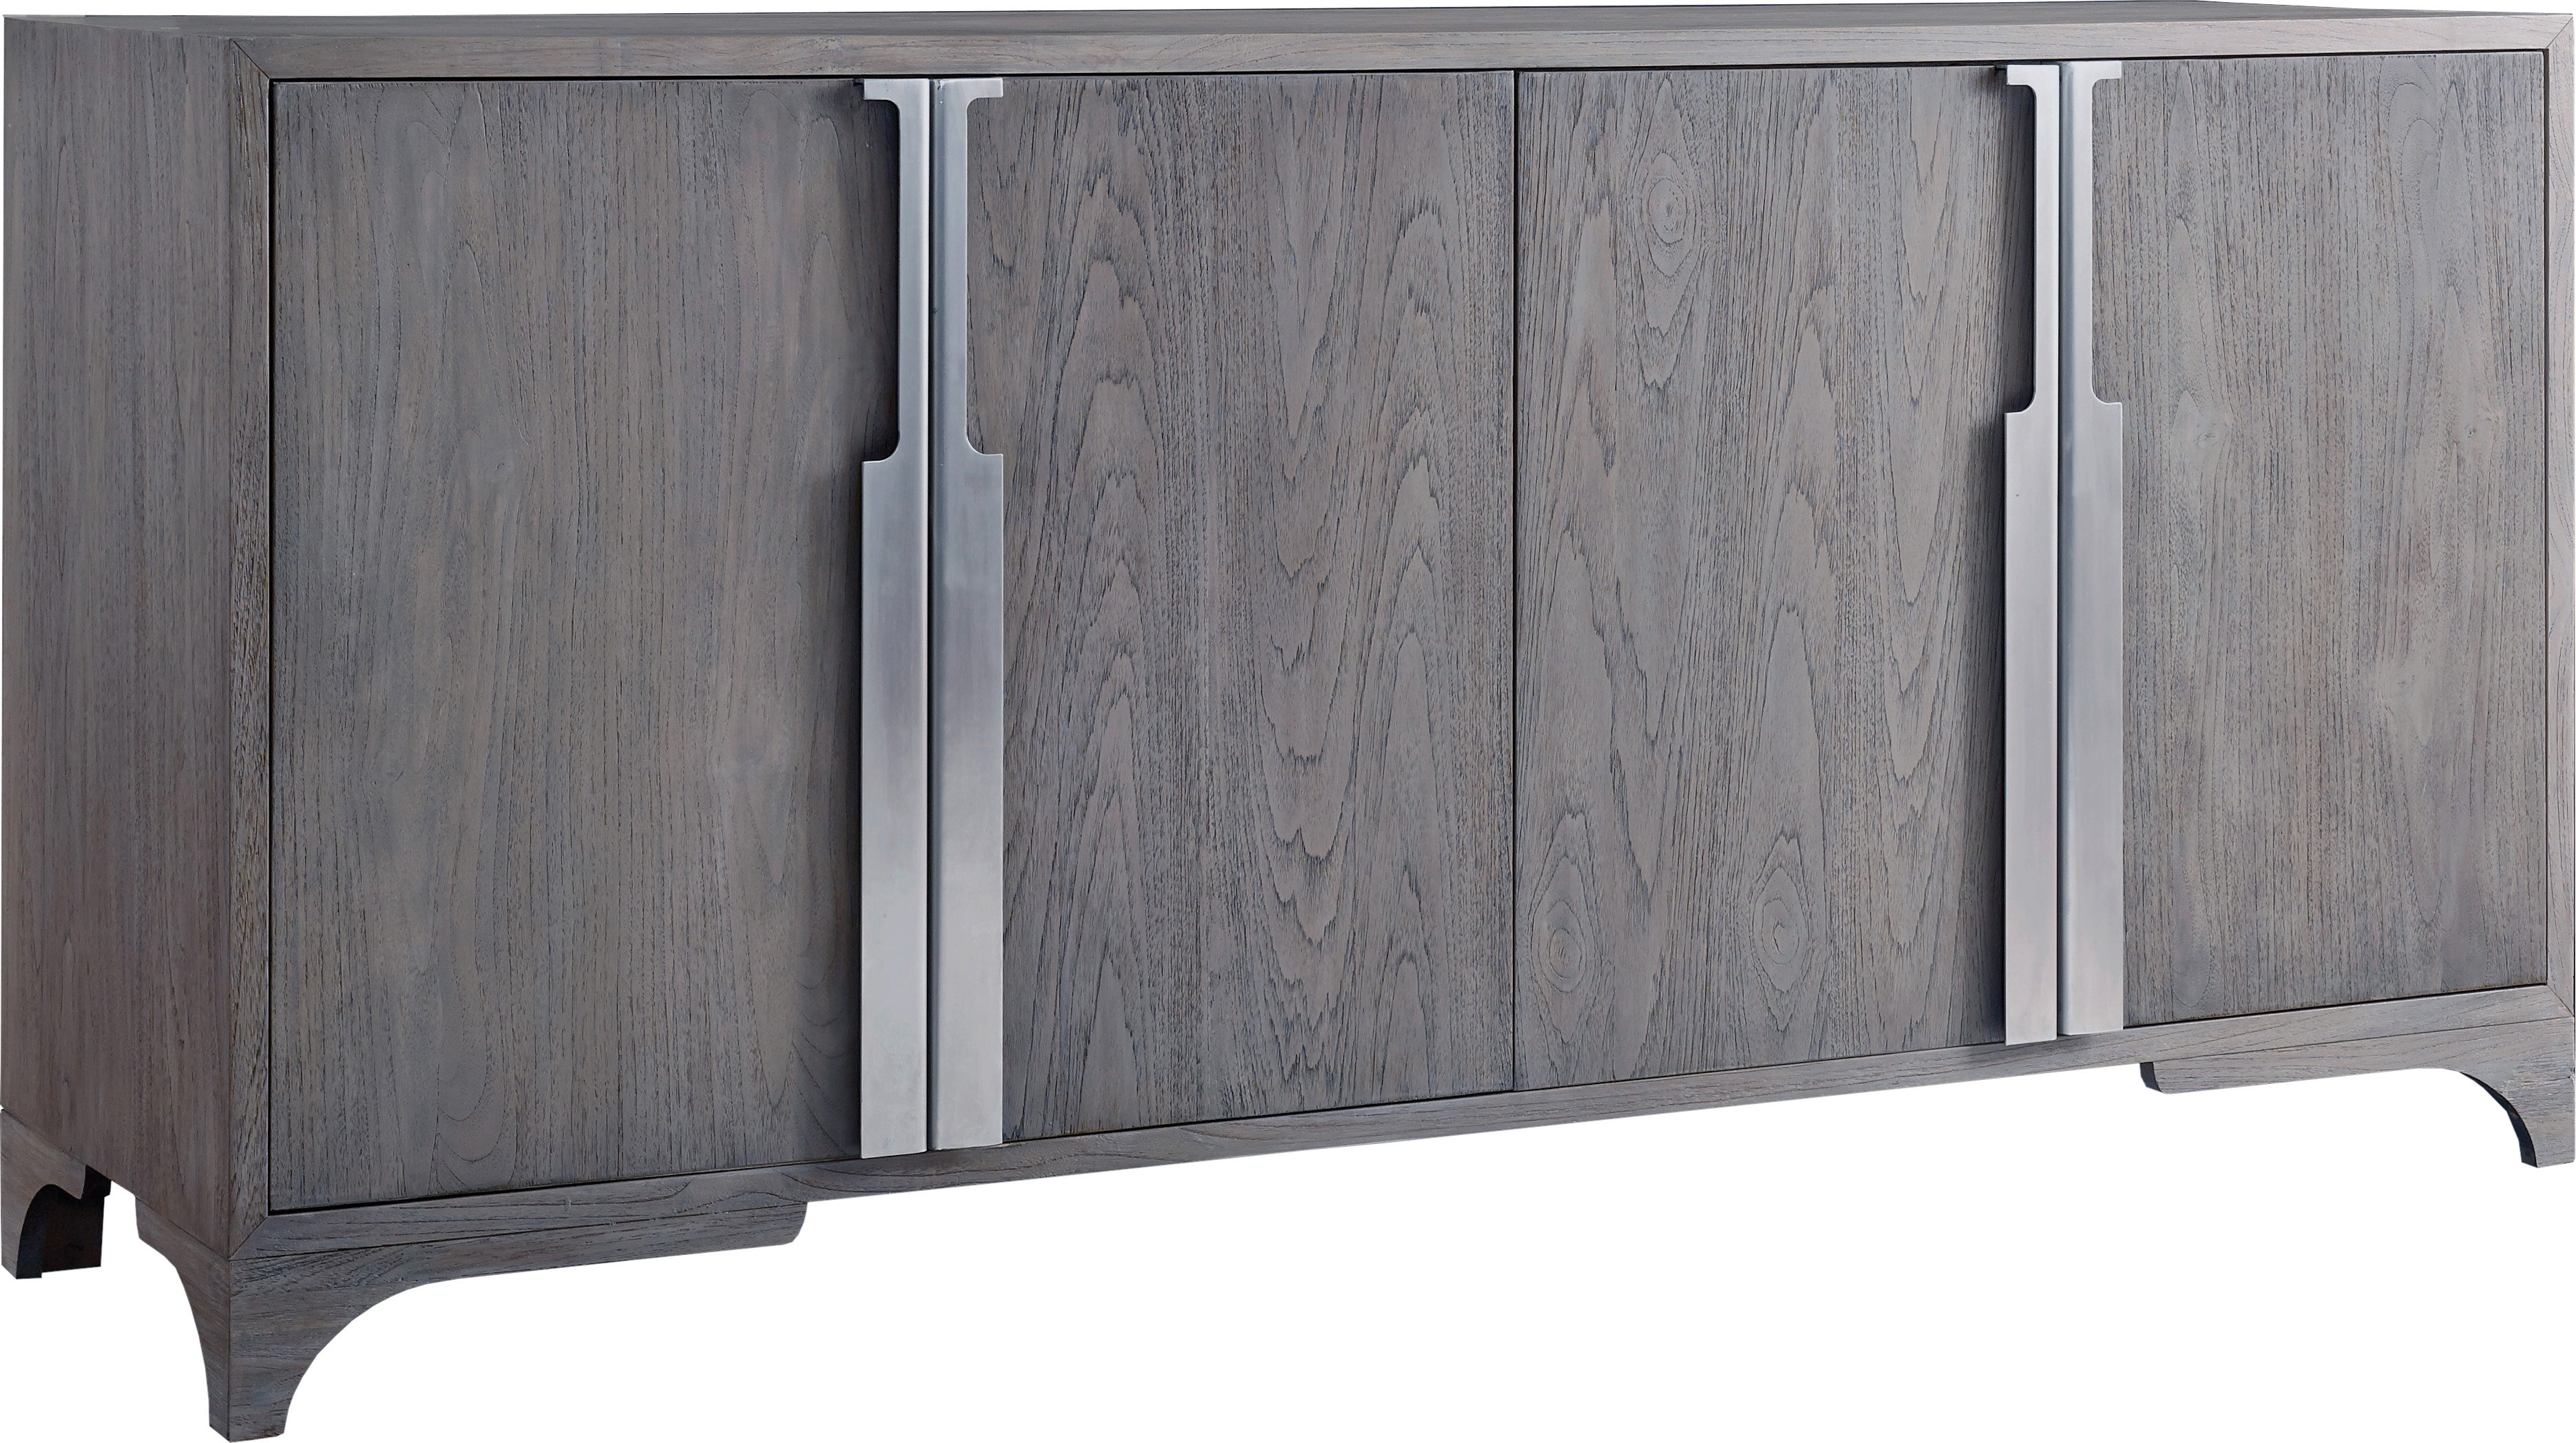 Brownstone Furniture Palmer Sideboard | Wayfair Throughout Most Up To Date Solar Refinement Sideboards (#3 of 20)